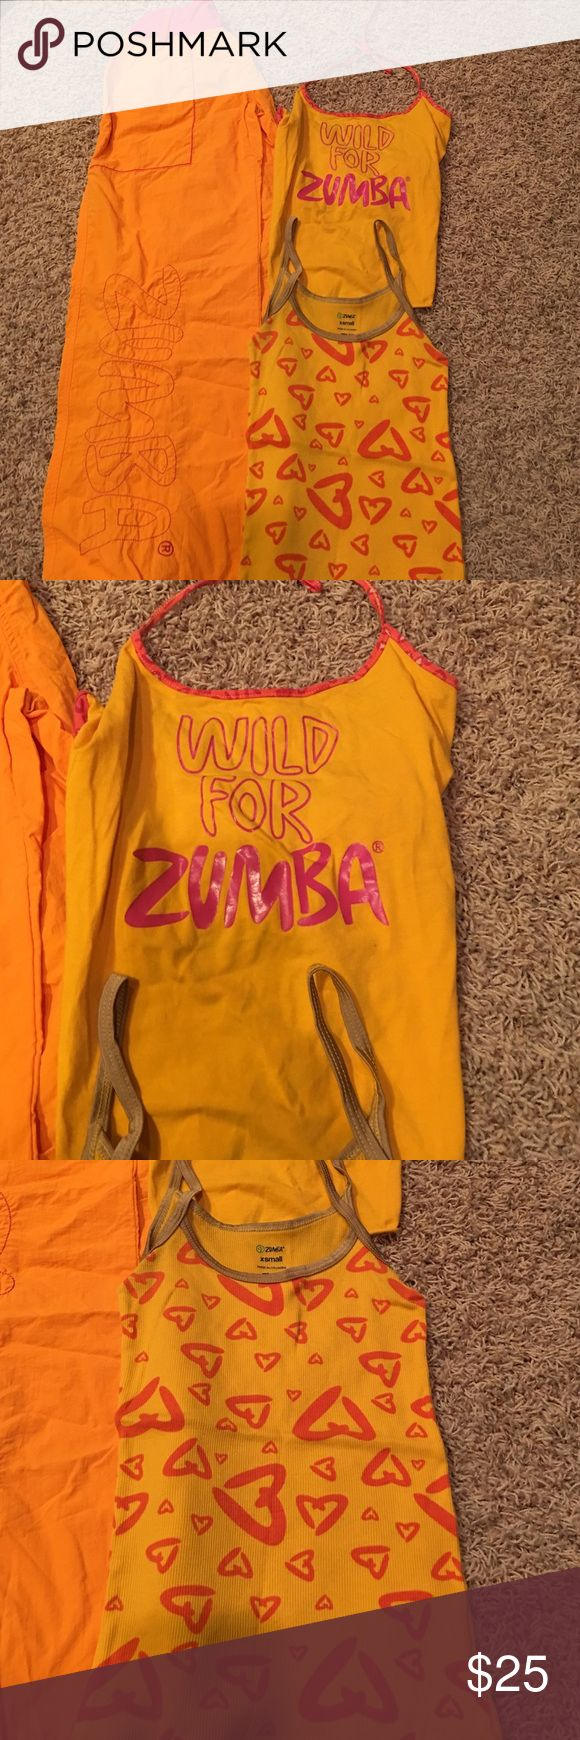 T-shirt design for zumba - Zumba Outfit Pants 2 Tops